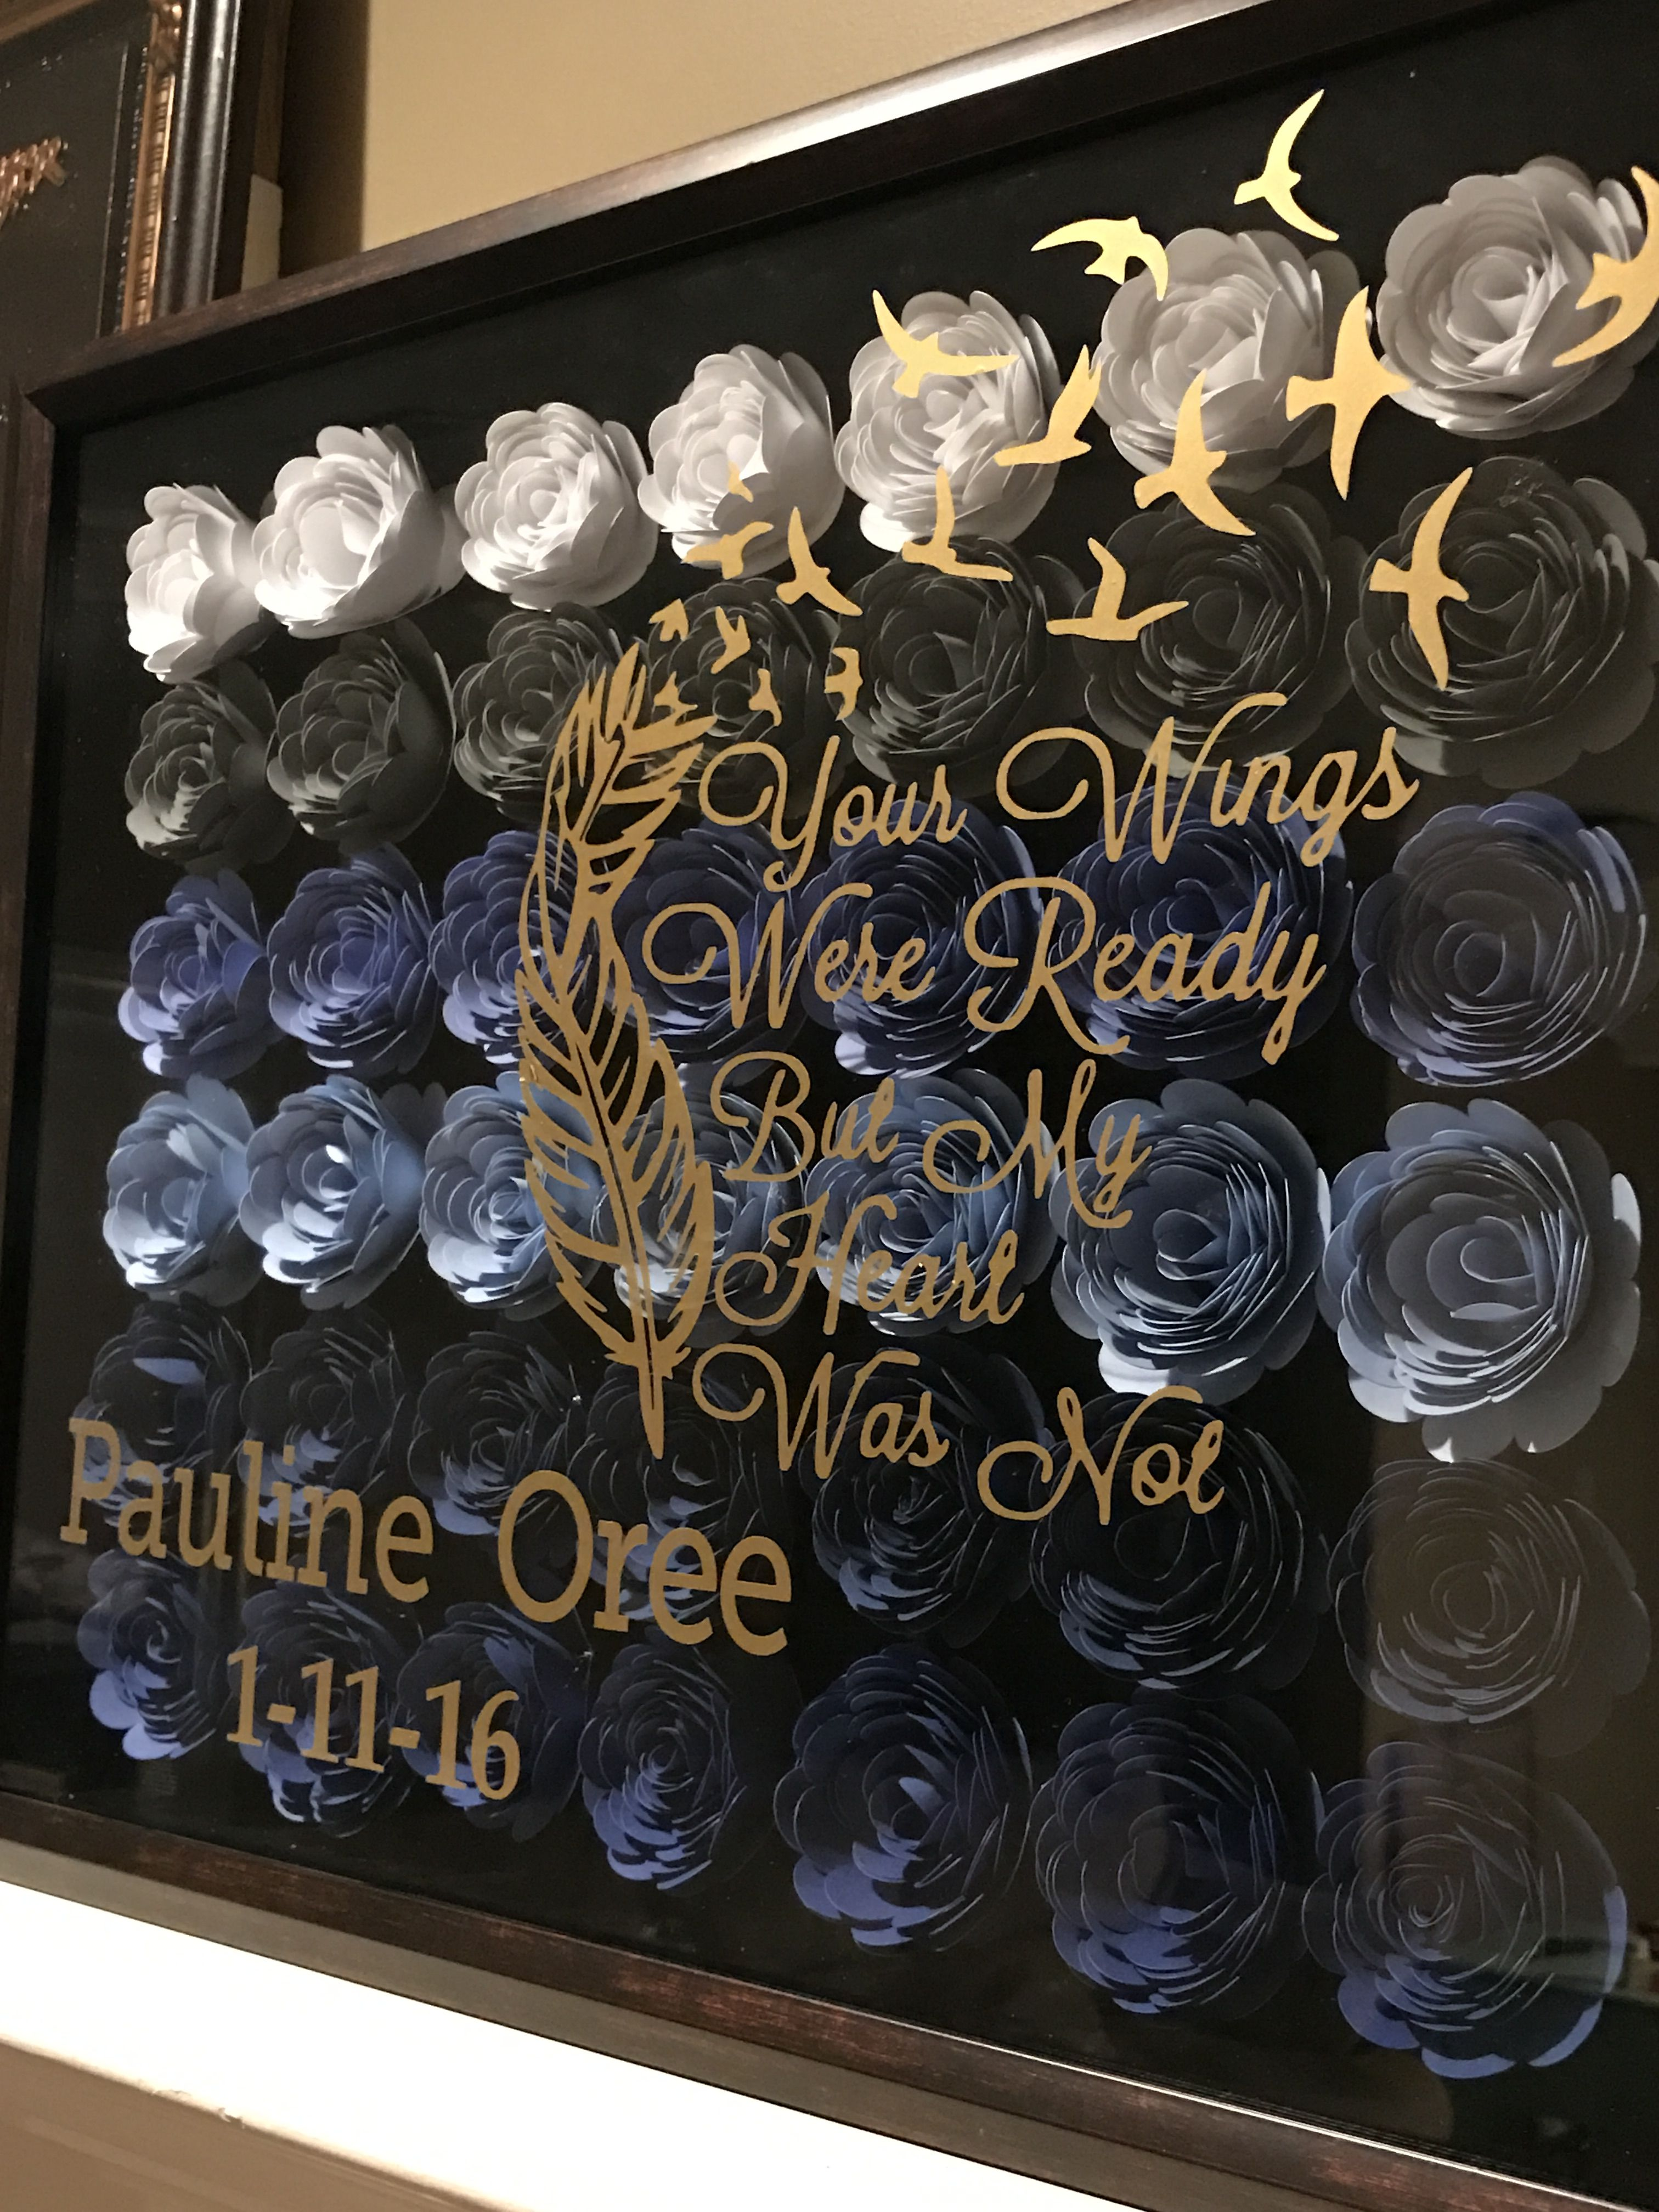 20 shadow box ideas cute and creative displaying meaningful memories diy pinterest diy. Black Bedroom Furniture Sets. Home Design Ideas